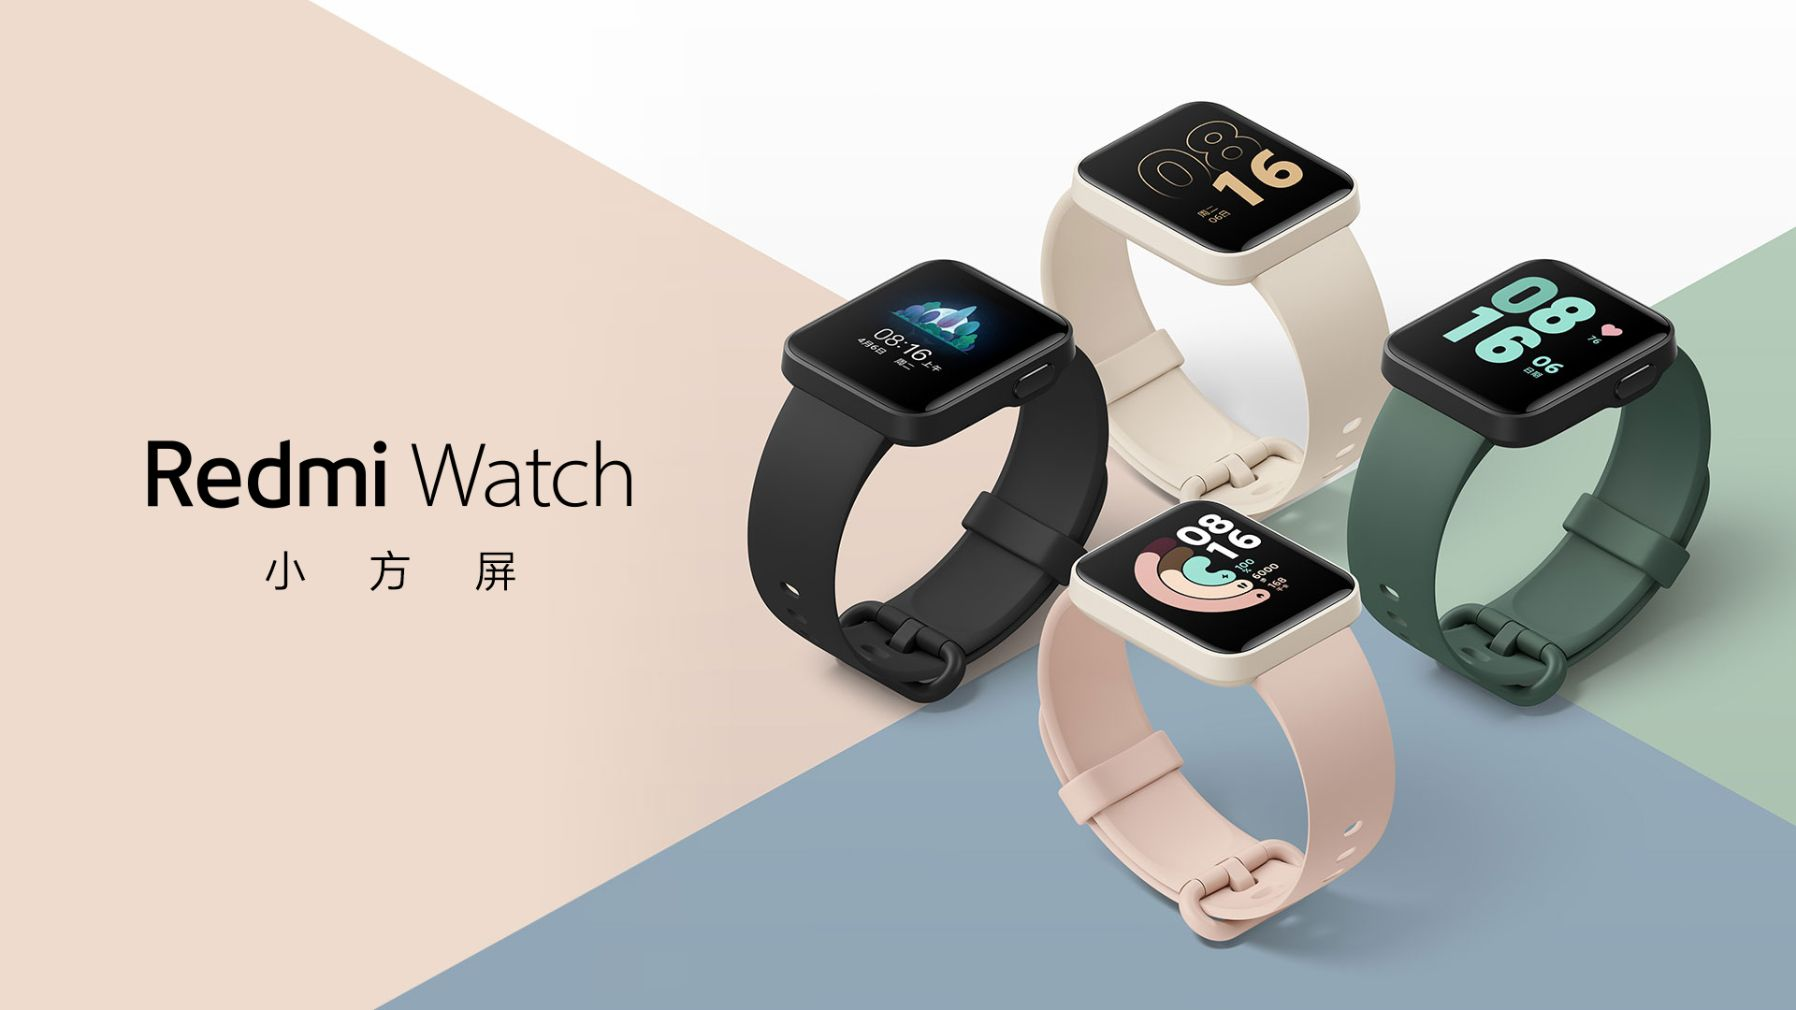 xiaomi redmi watch price in nepal